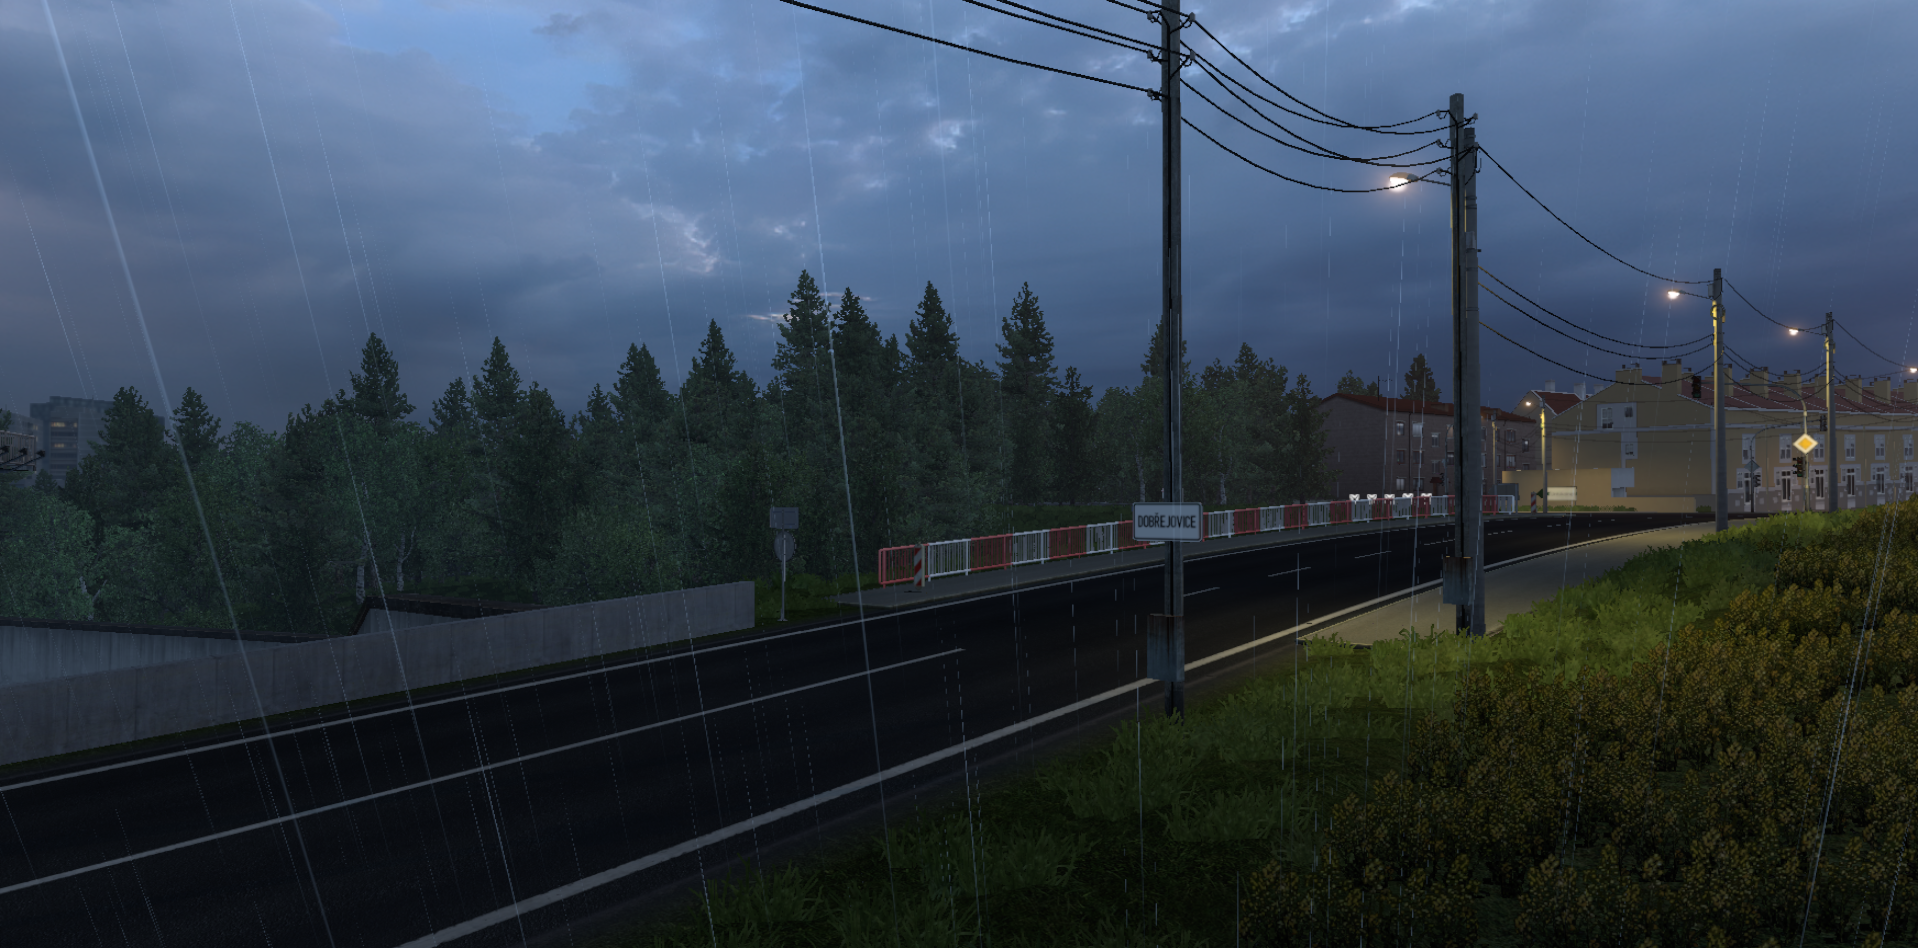 ets2_20210804_144510_00.png